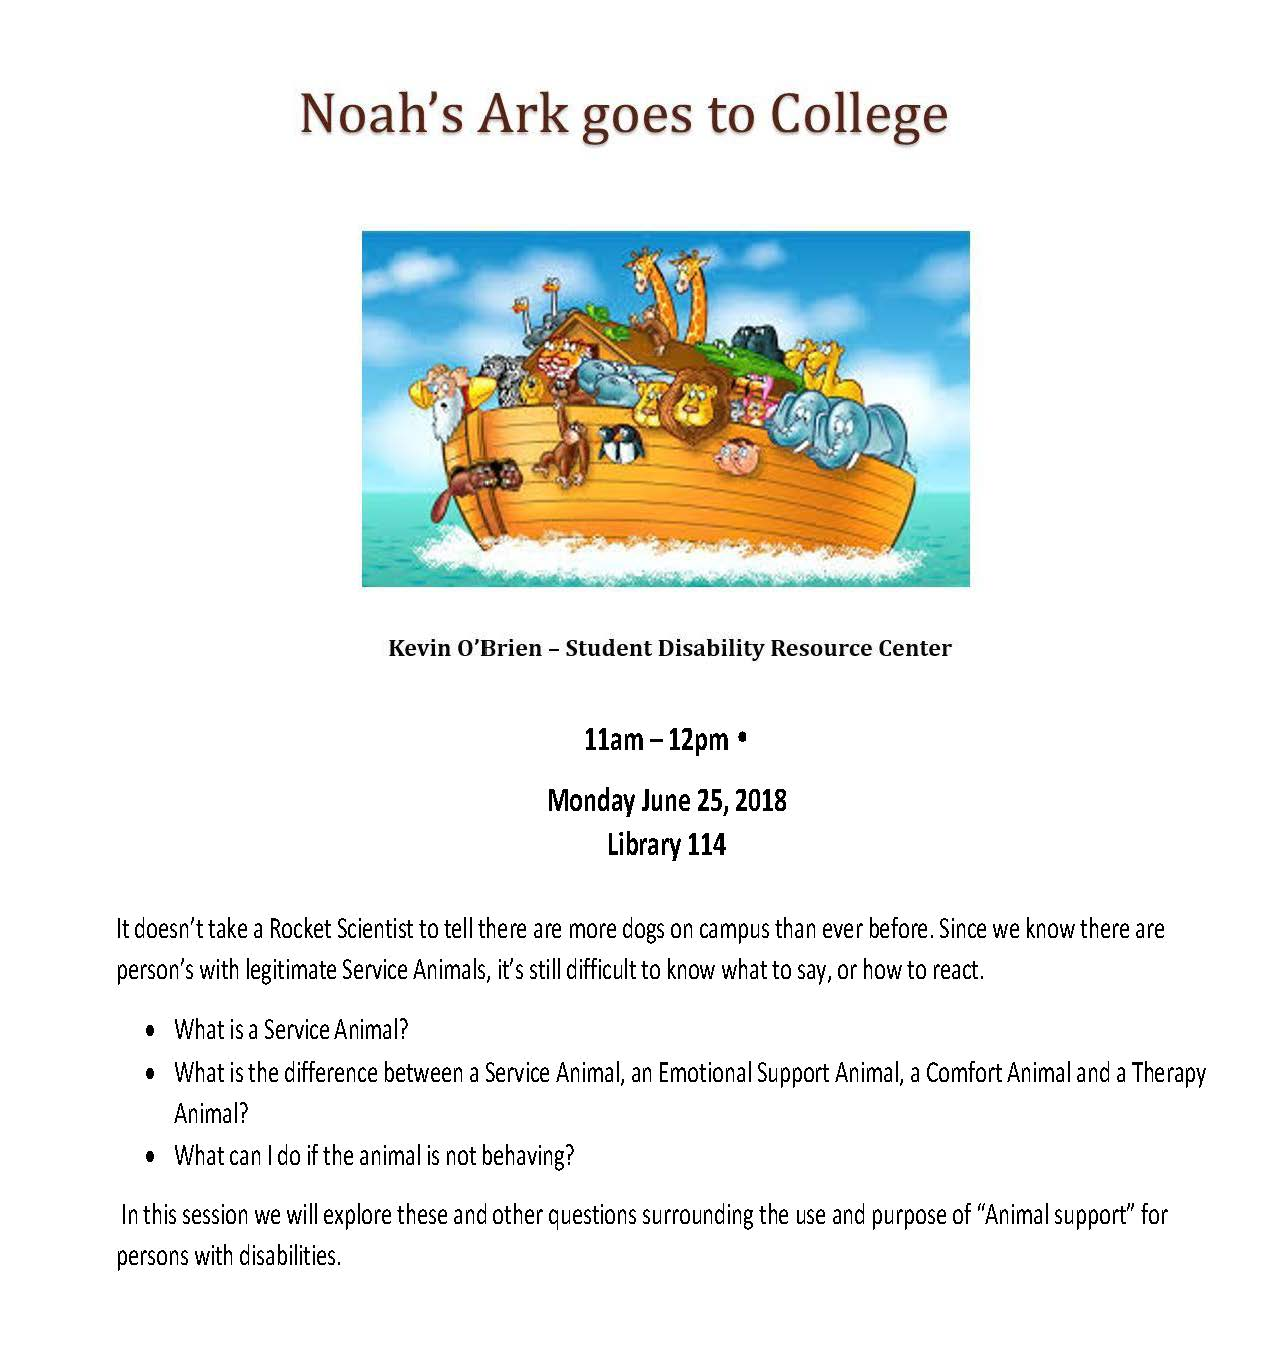 Noah's Ark goes to College